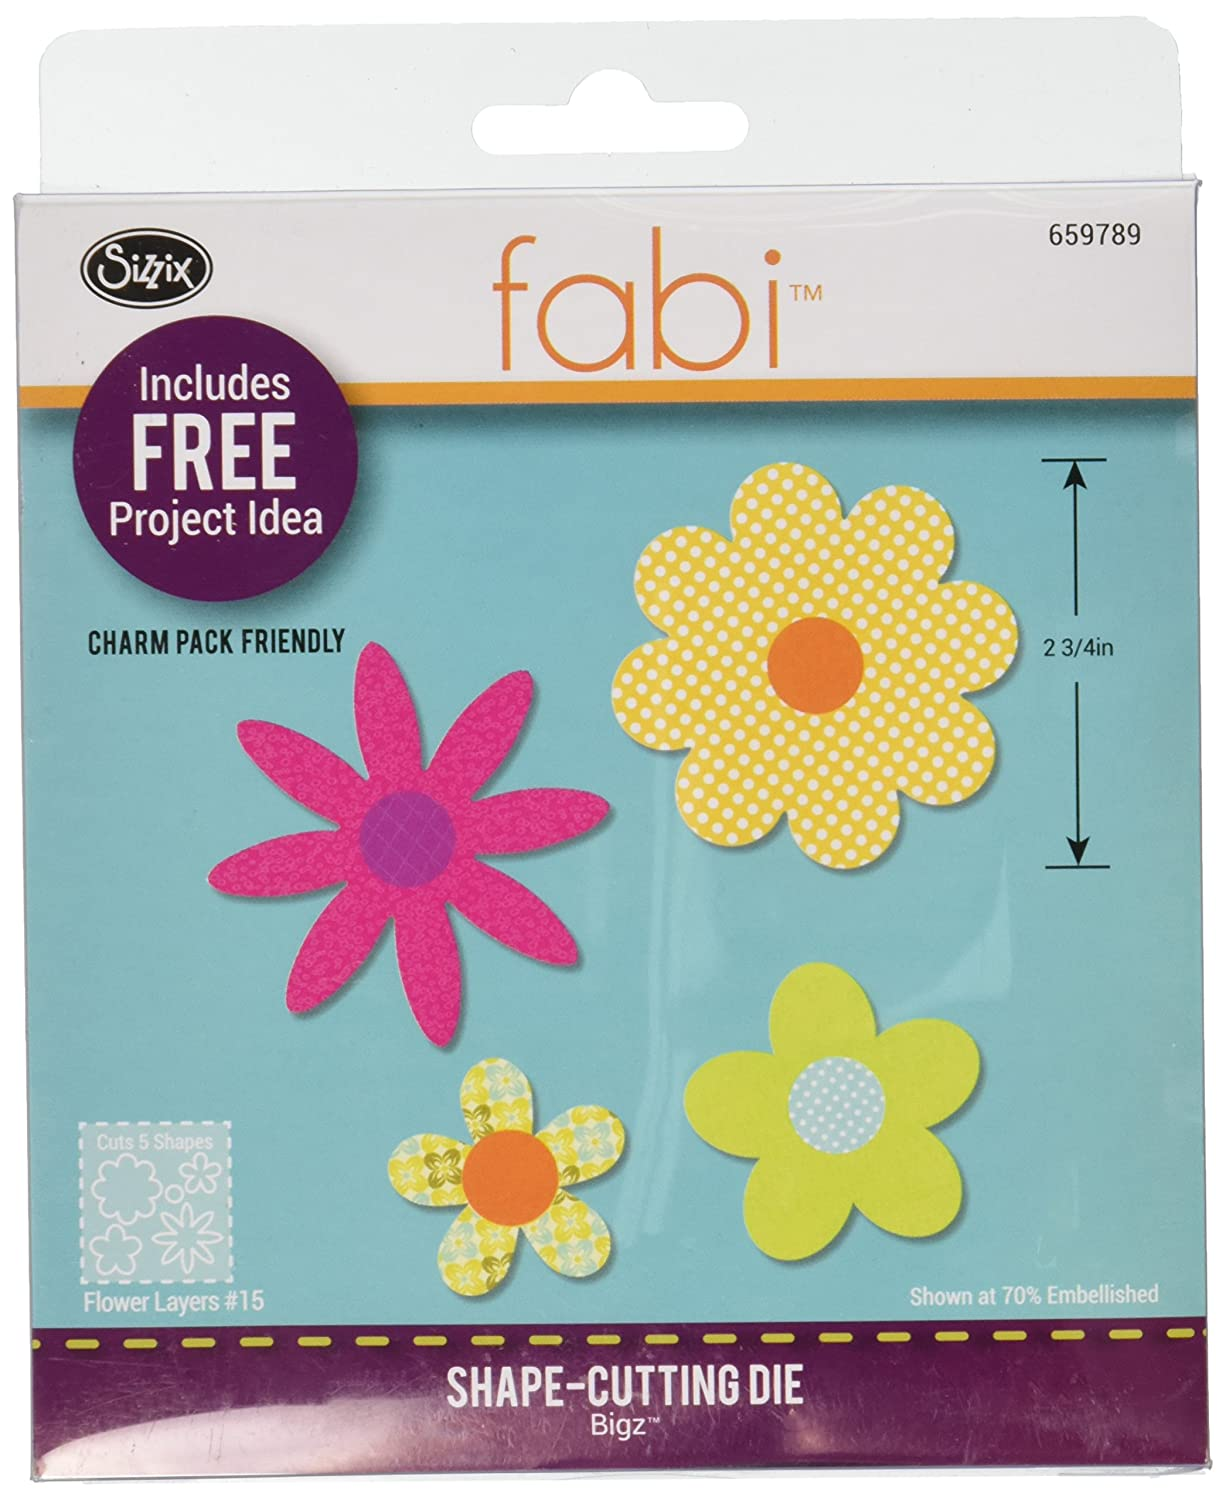 Sizzix Bigz Die, Flower Layers #15 (Fabi Edition) Ellison 659789